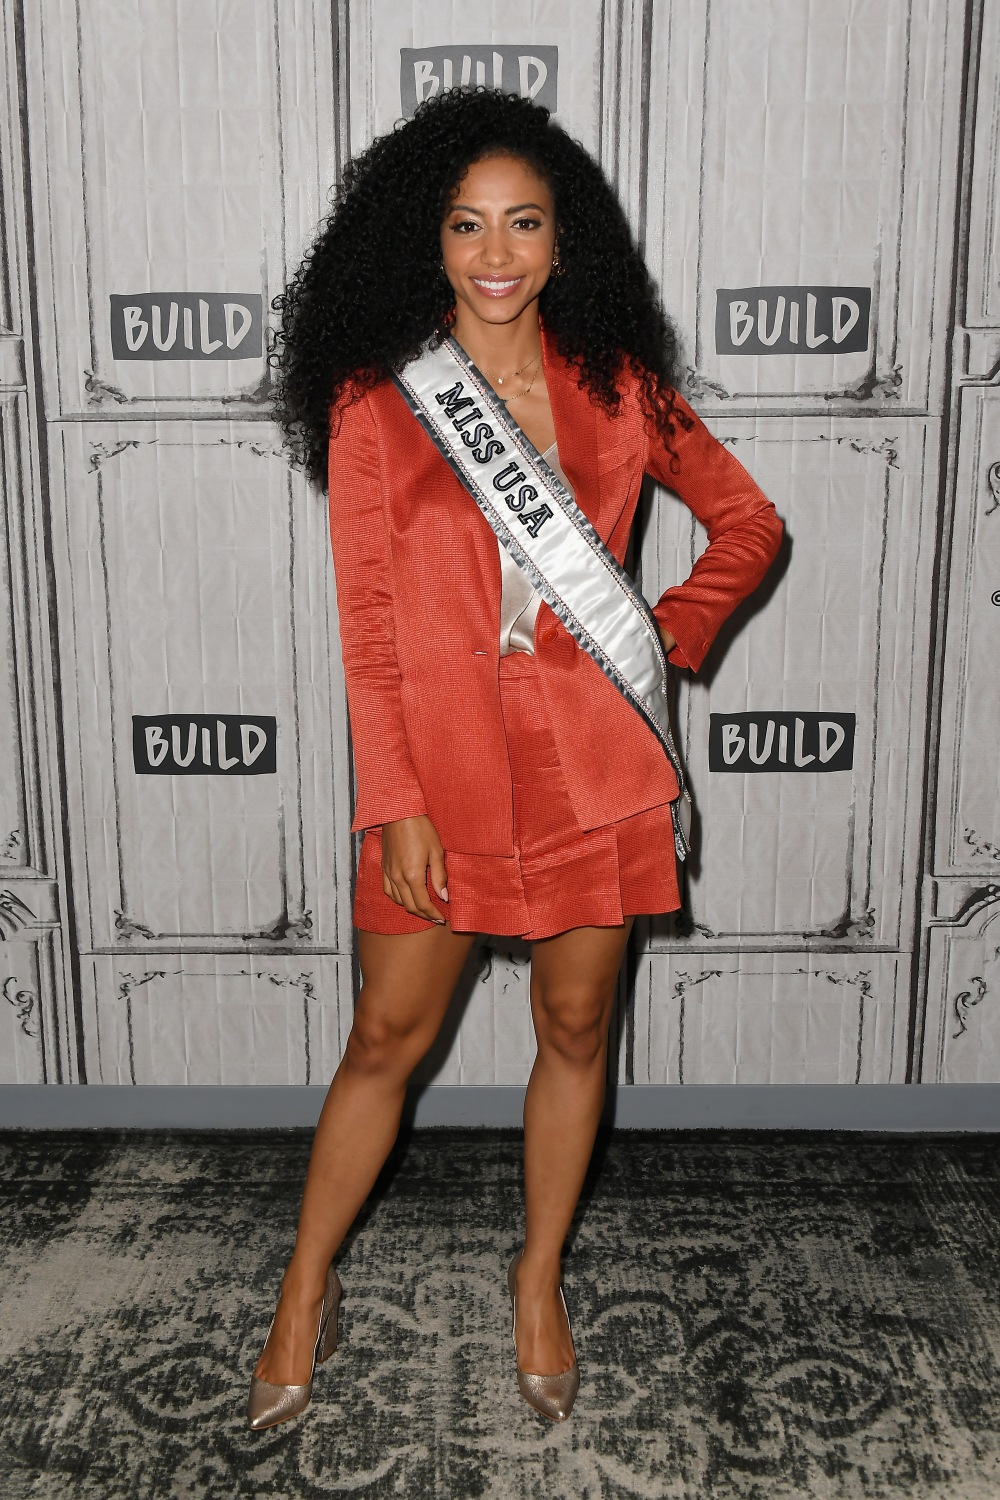 """NEW YORK, NEW YORK - MAY 07: Cheslie Kryst visits the BUILD Series to discuss Winning """"Miss USA"""" at Build Studio on May 07, 2019 in New York City. (Photo by Nicholas Hunt/Getty Images)"""